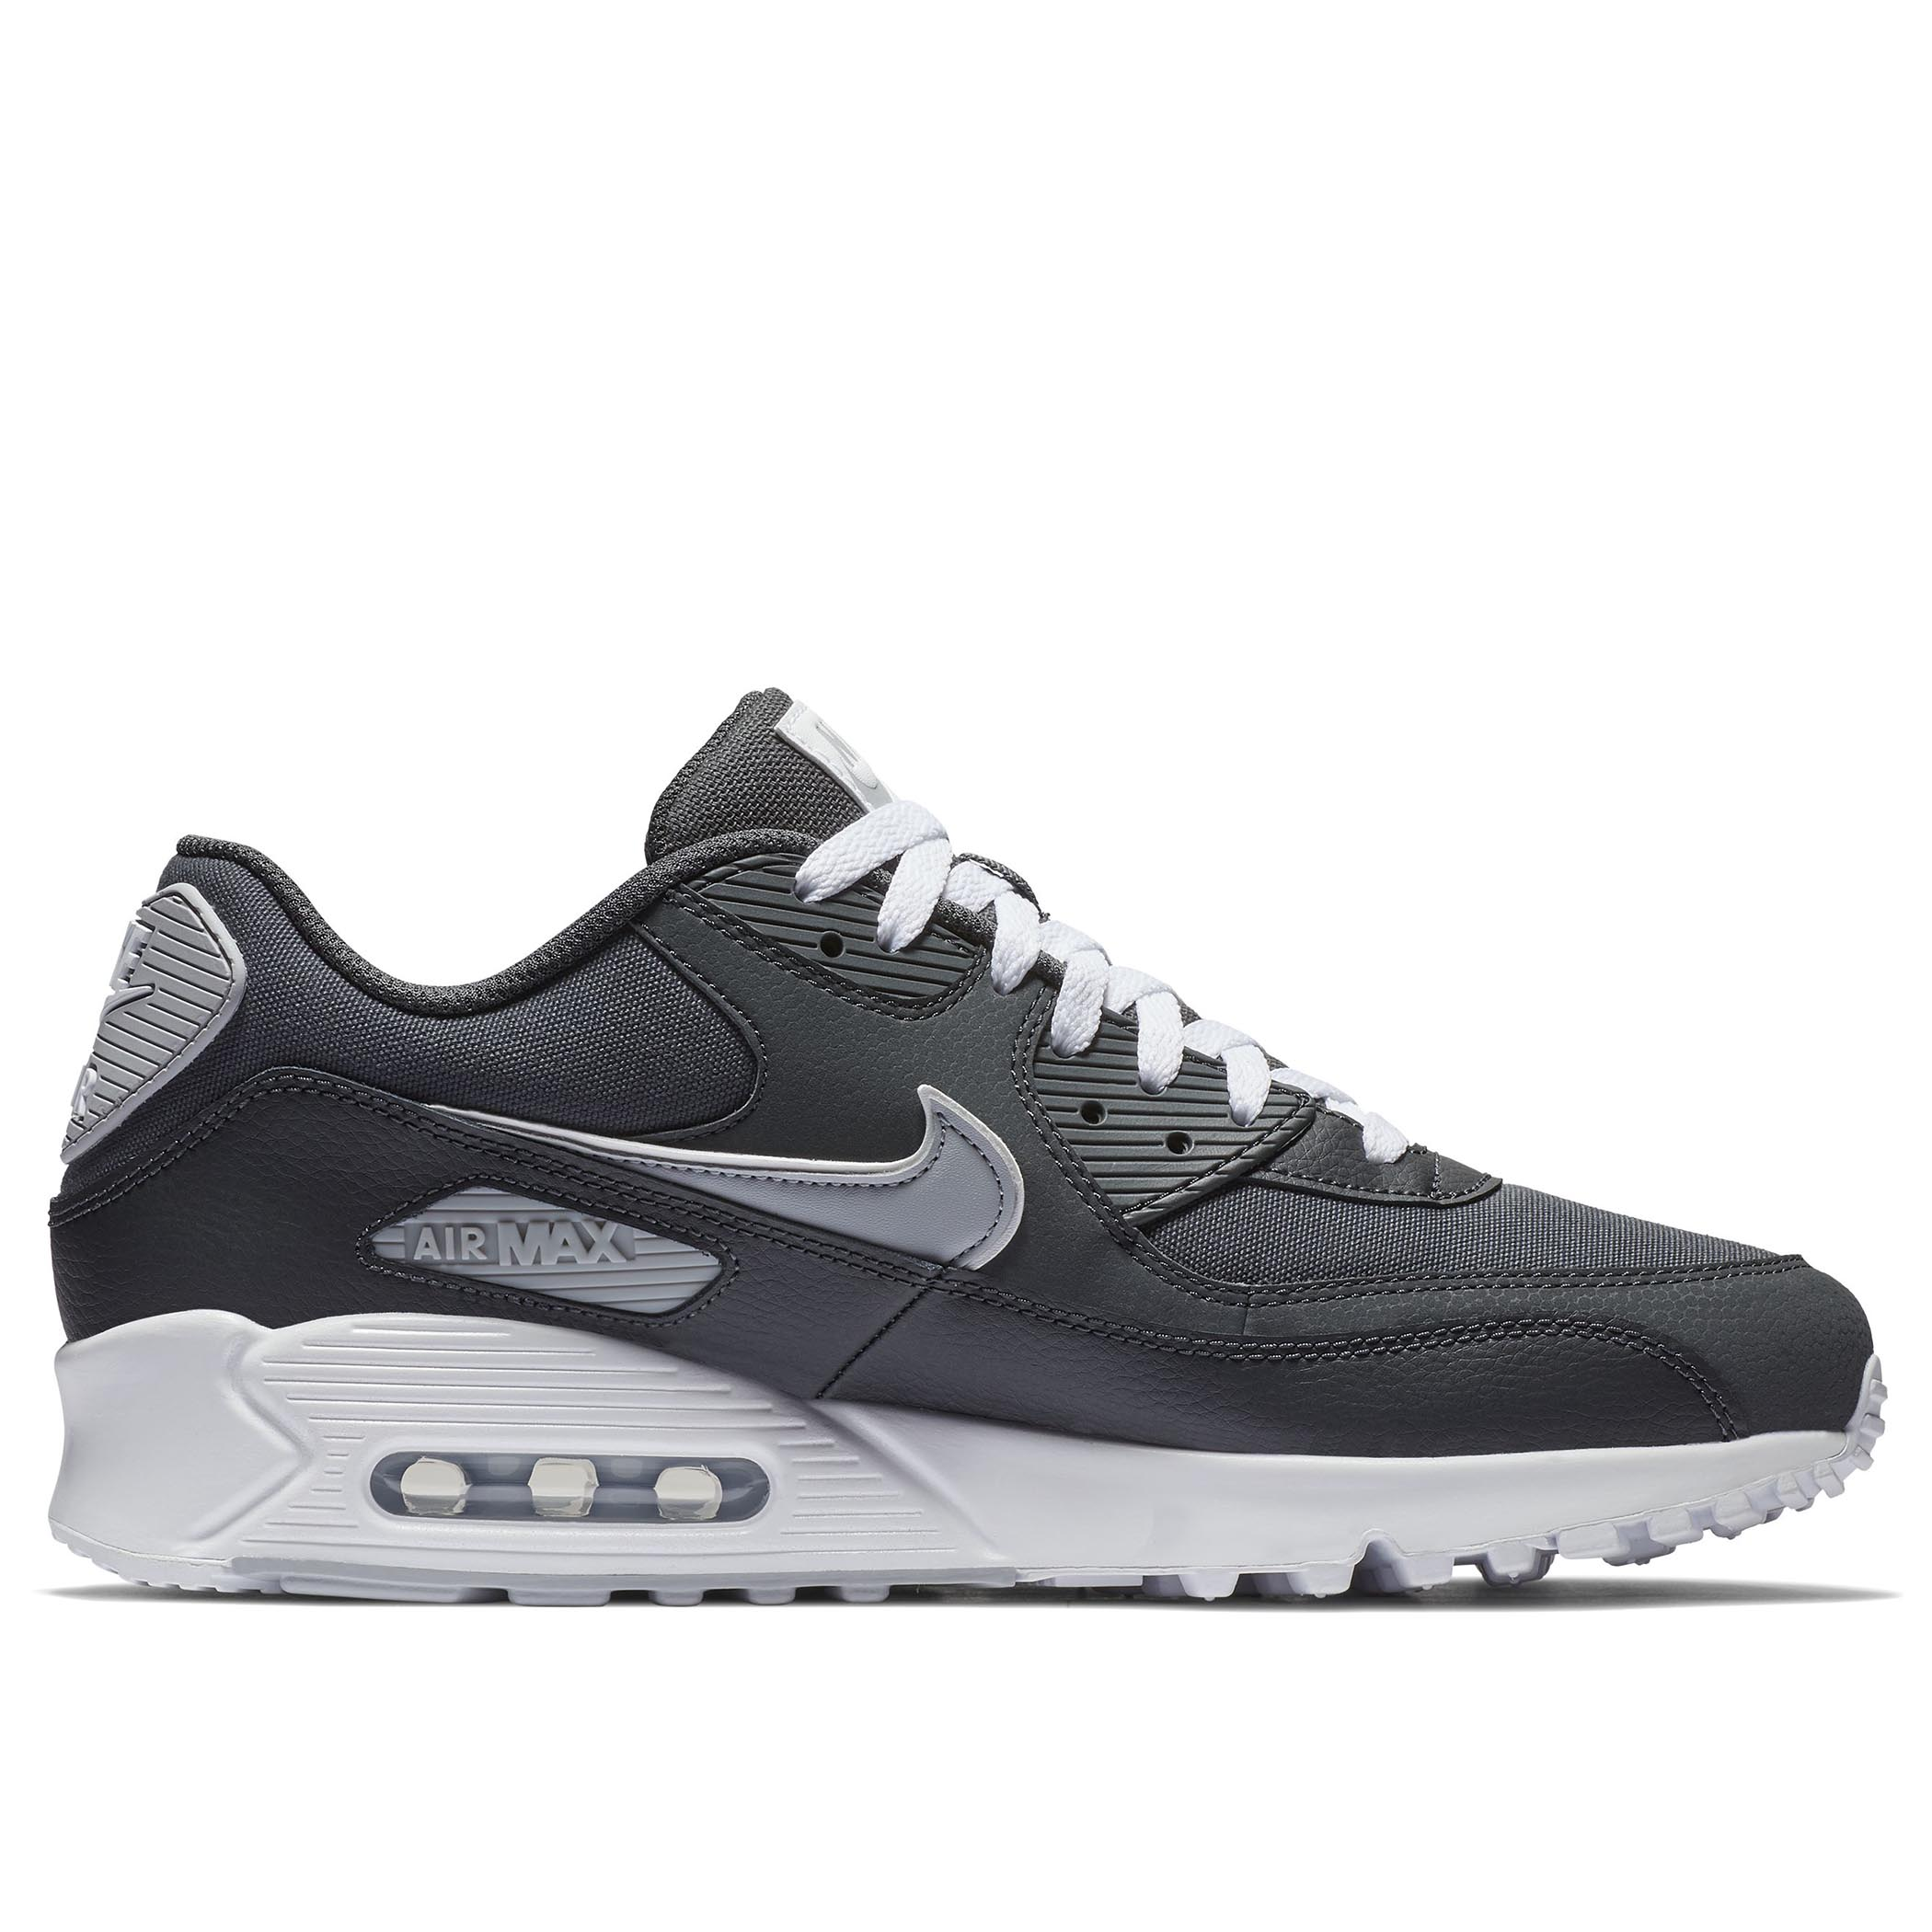 9d2362ca Мужские кроссовки Nike Air Max 90 Essential Anthracite/Wolf Grey-White -  фото 5